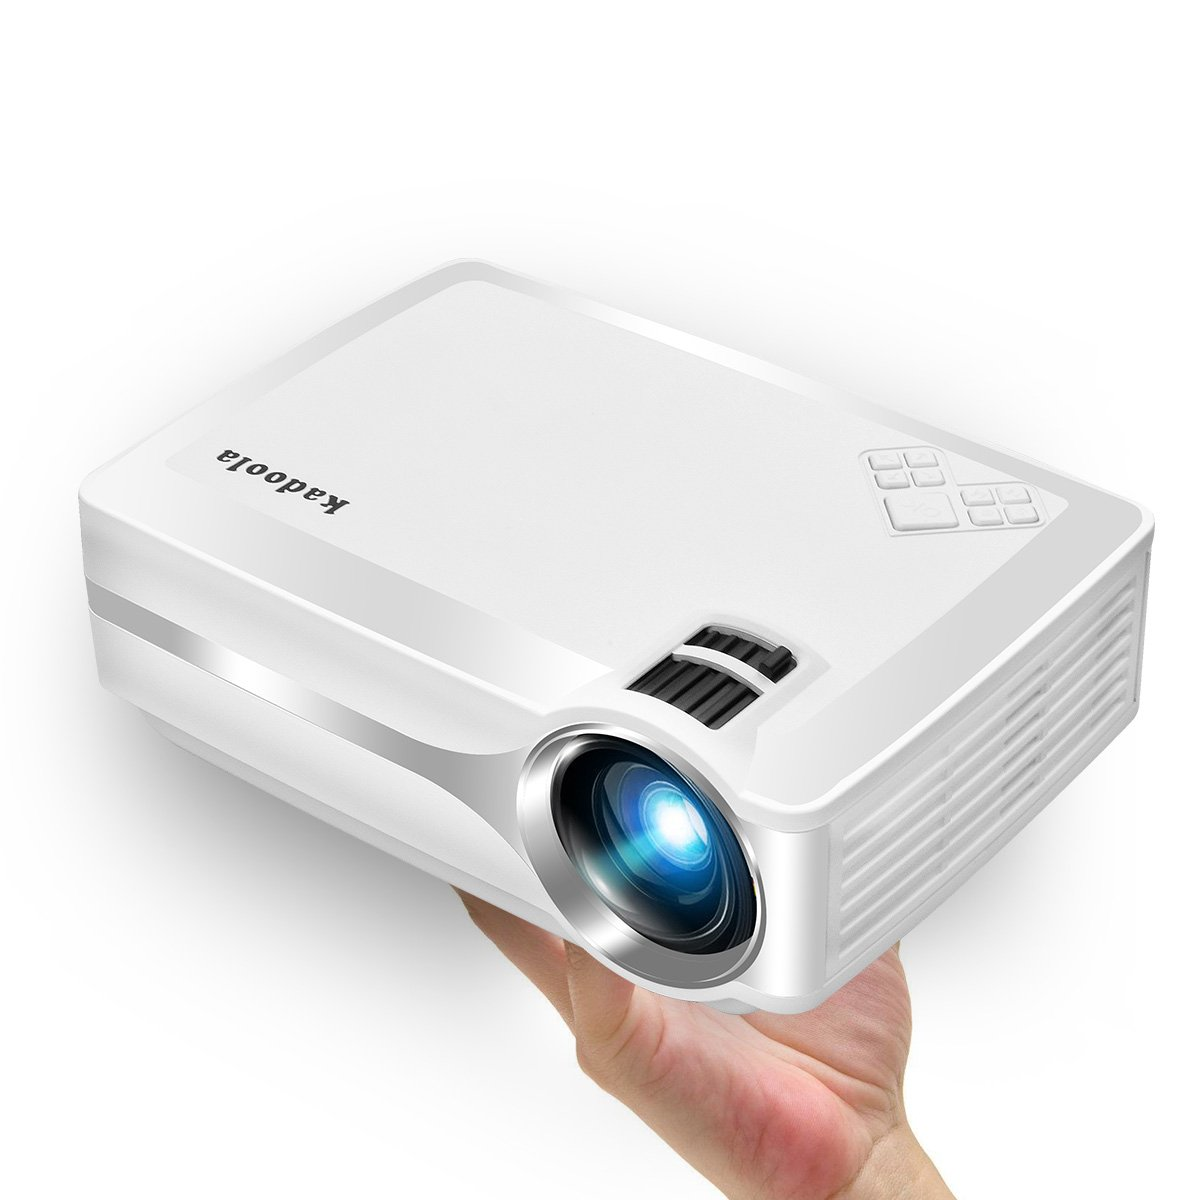 Mini Projector, Kadoola 2000 Lumens Pico Projector Support 1080P HDMI USB SD AV VGA Audio for Movie, TV, Xbox & More HDMI-Enabled Devices with Free HDMI Cable - White